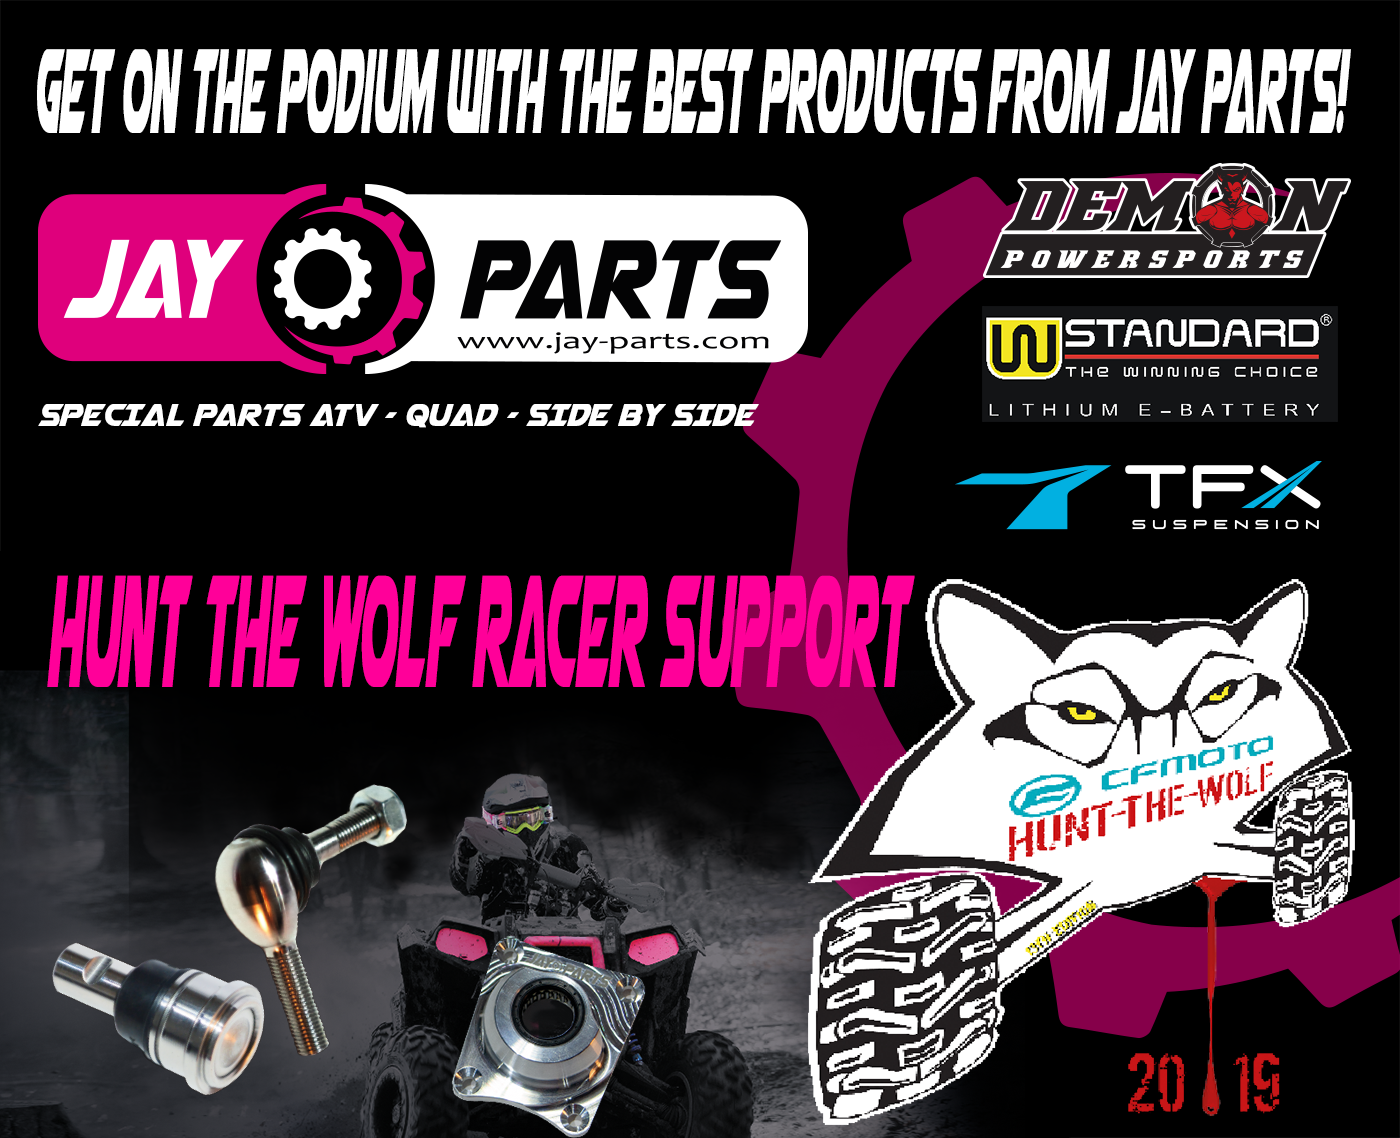 Jay Parts Sponsor Hunt The Wolf